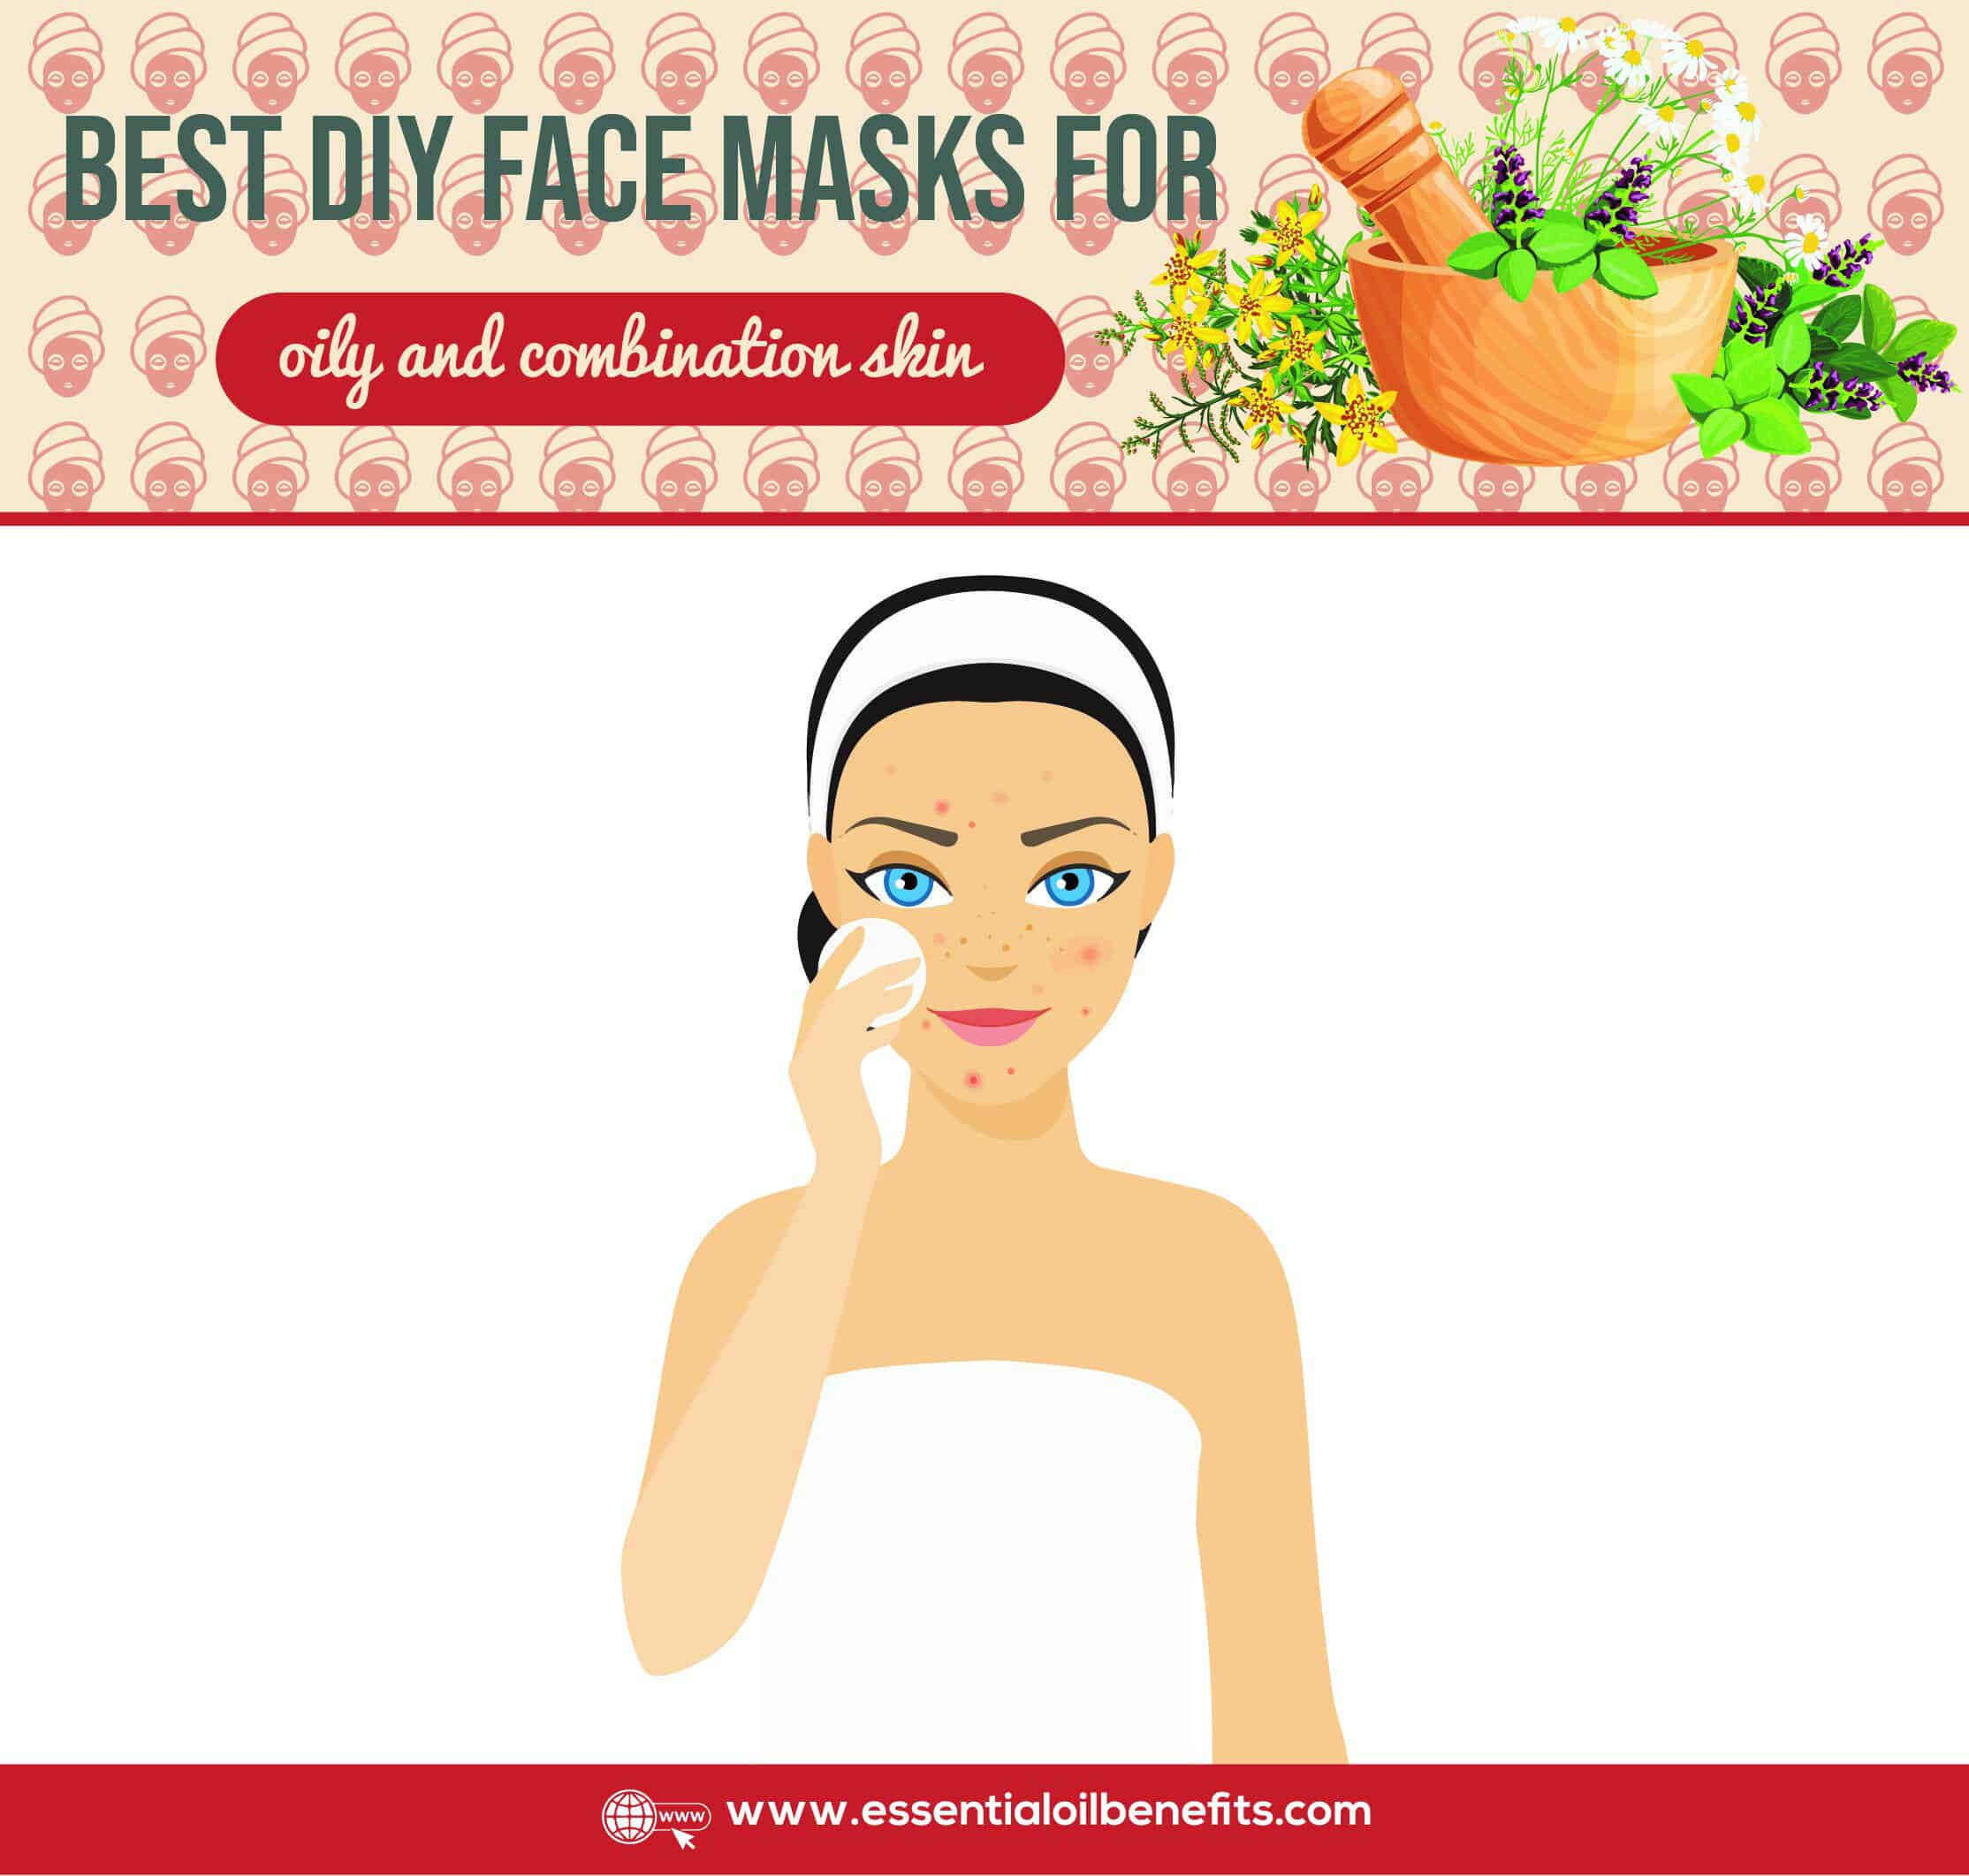 Best DIY Face Mask Recipes For All Skin Types (aging, dry, normal/sensitive, oily/combination, very dry skin) Essential Oil Benefits